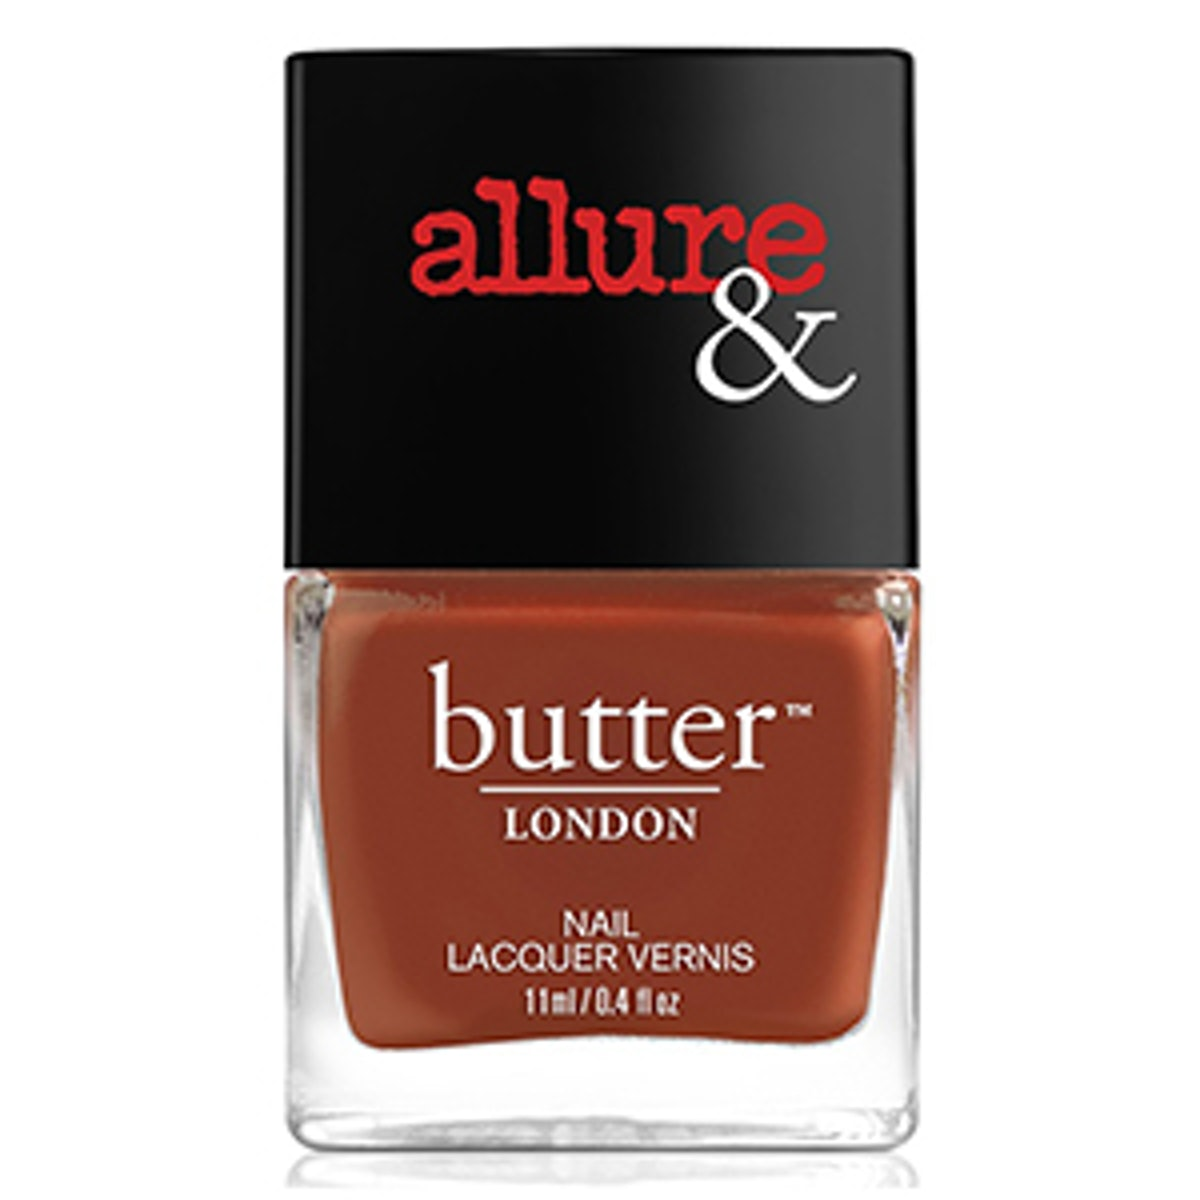 Allure For Butter London Nail Polish In It's Vintage